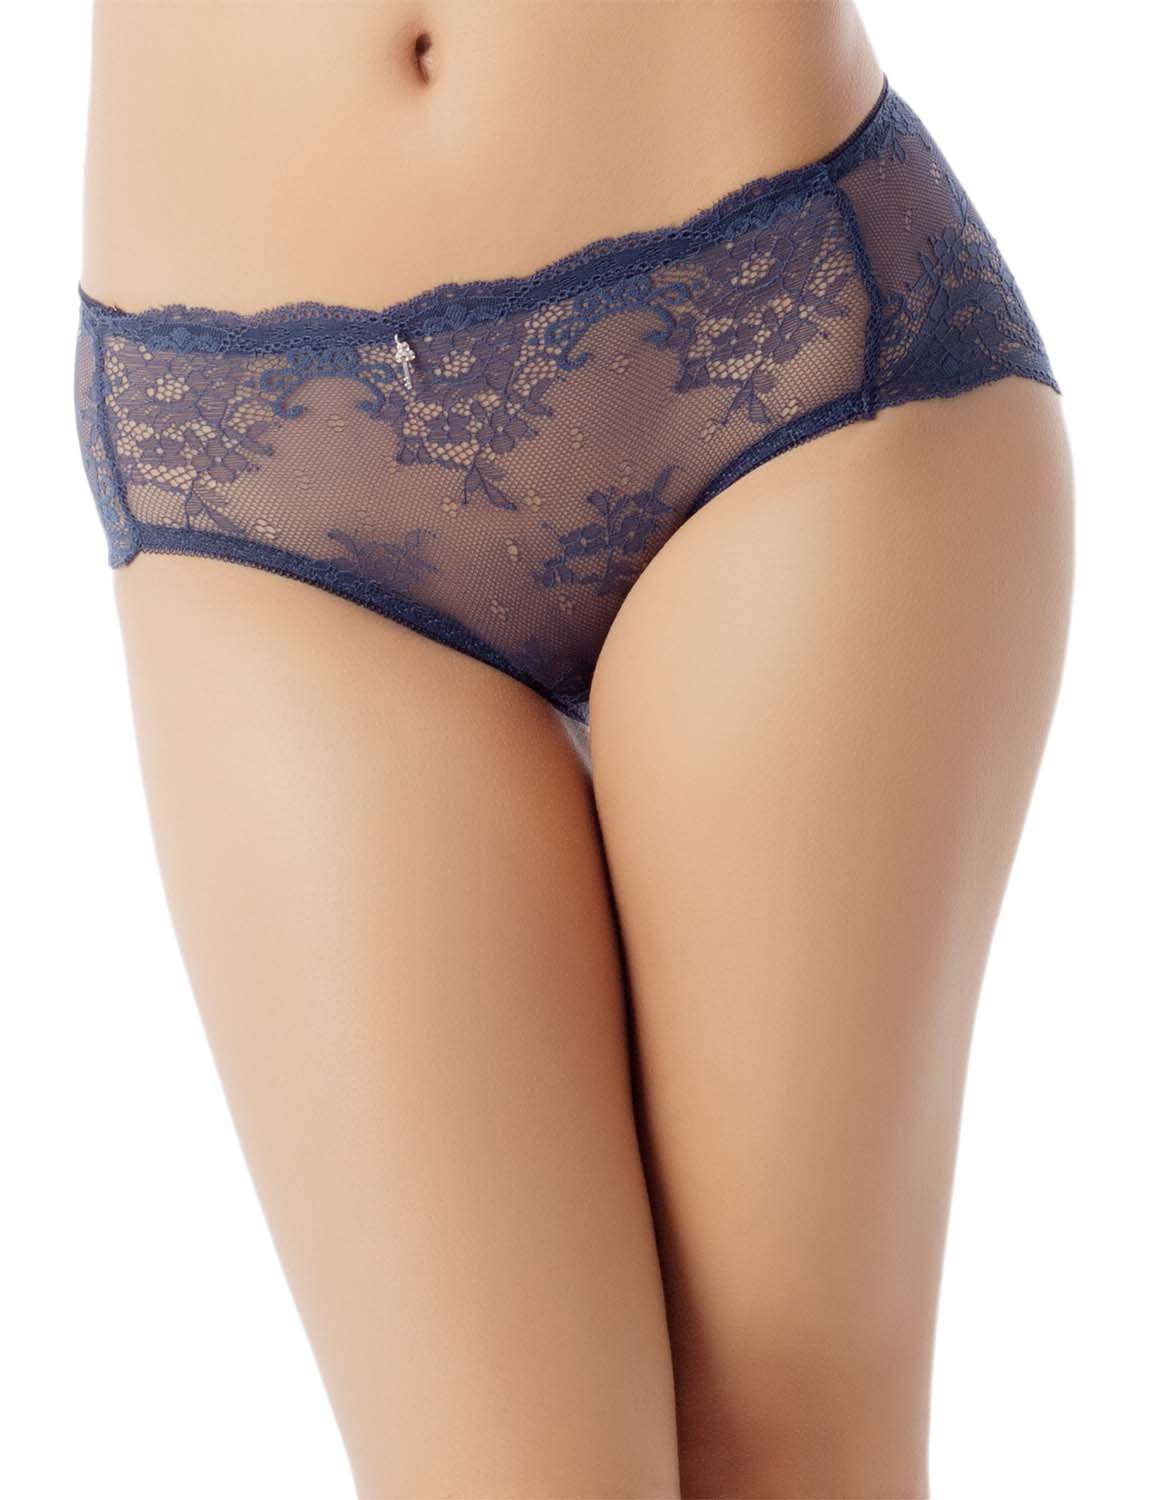 Women's Sexy Lace See-Through Hot Sheer Knickers Mid Waist Hipster Panty, Size: L, Navy